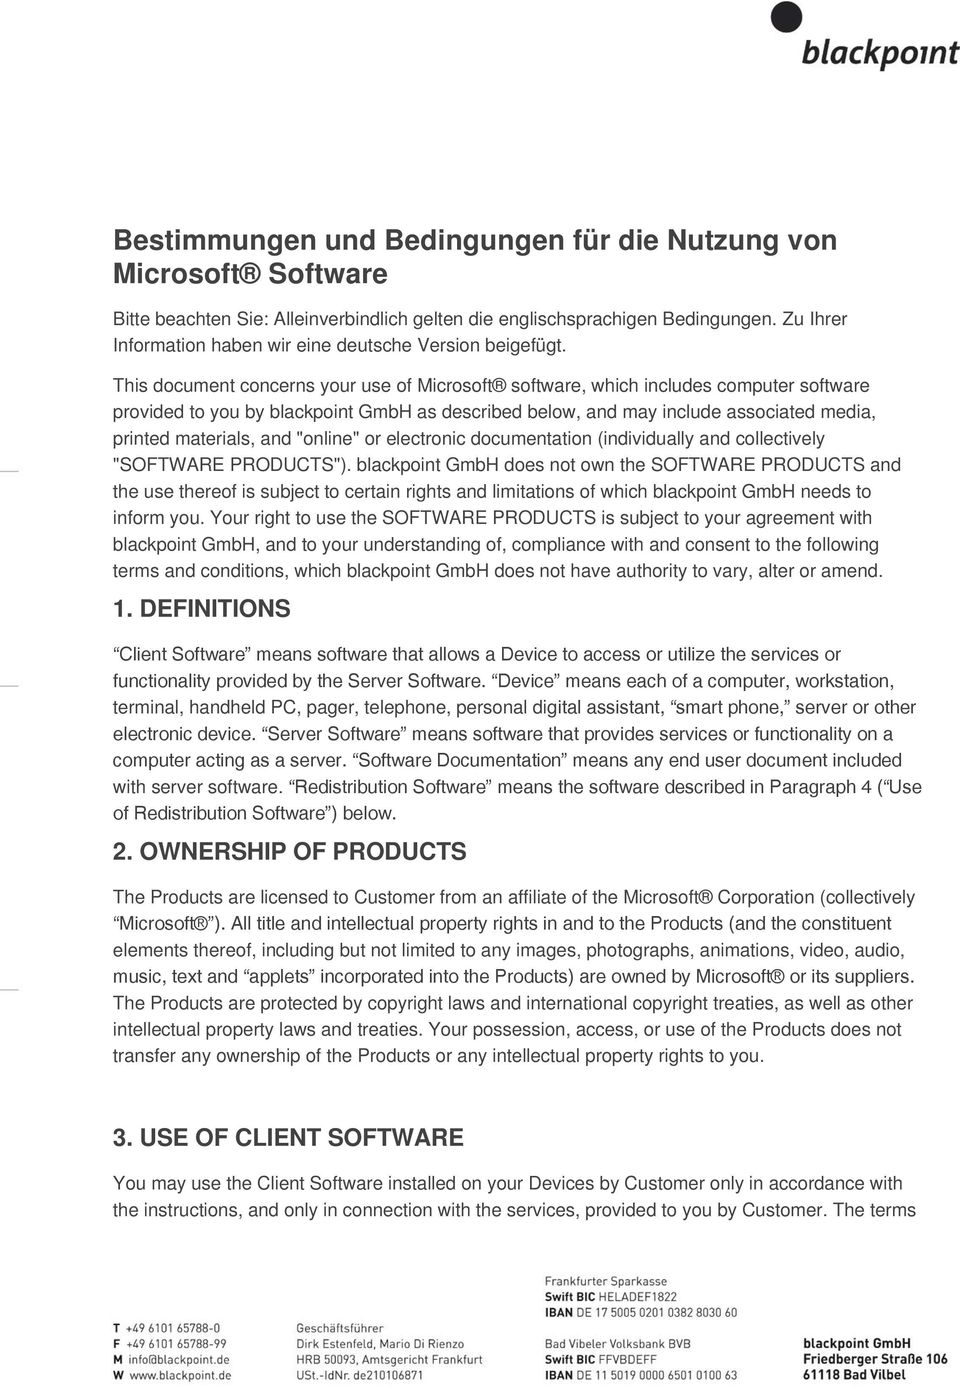 This document concerns your use of Microsoft software, which includes computer software provided to you by blackpoint GmbH as described below, and may include associated media, printed materials, and